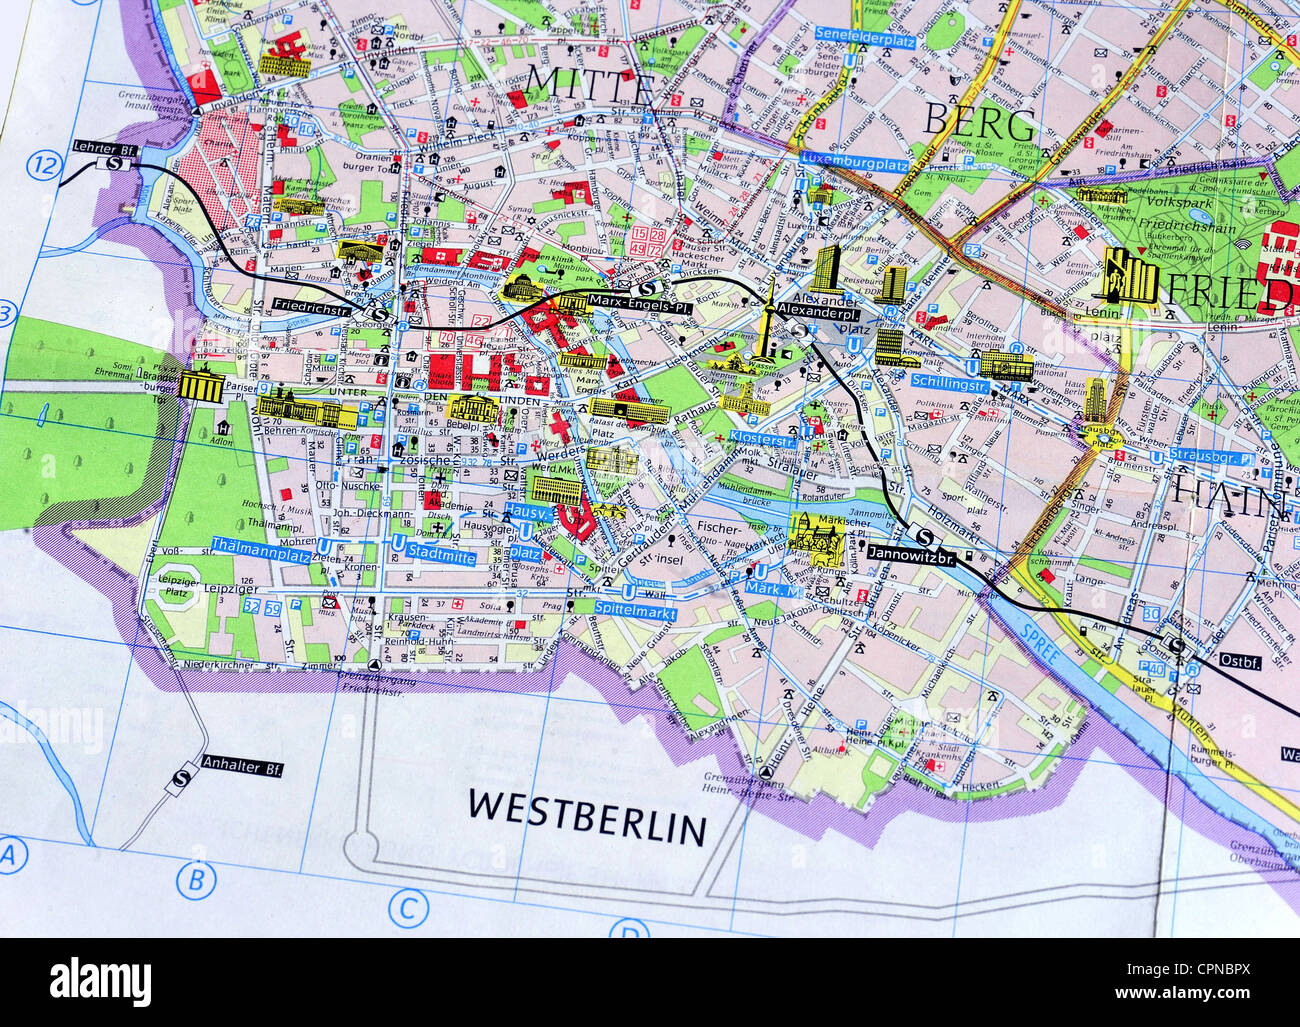 Berlin Map Of Germany.Berlin Map Stock Photos Berlin Map Stock Images Alamy